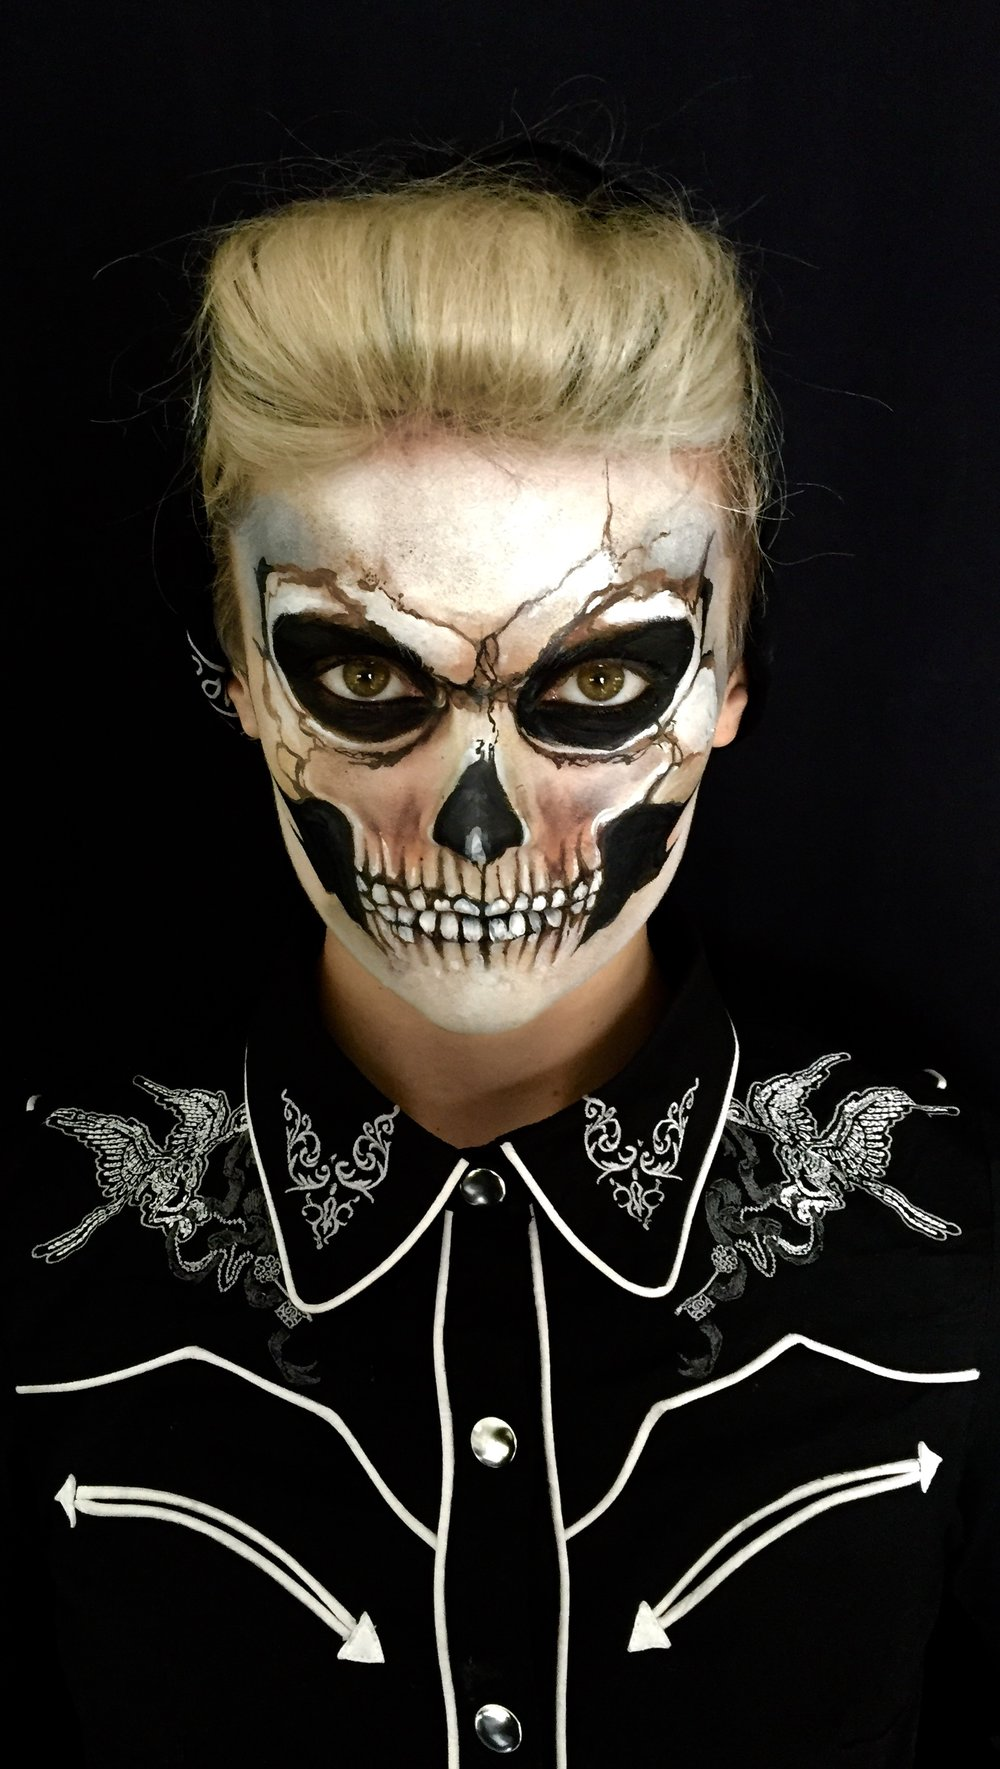 sugar skull H by Brierley Thorpe.jpg